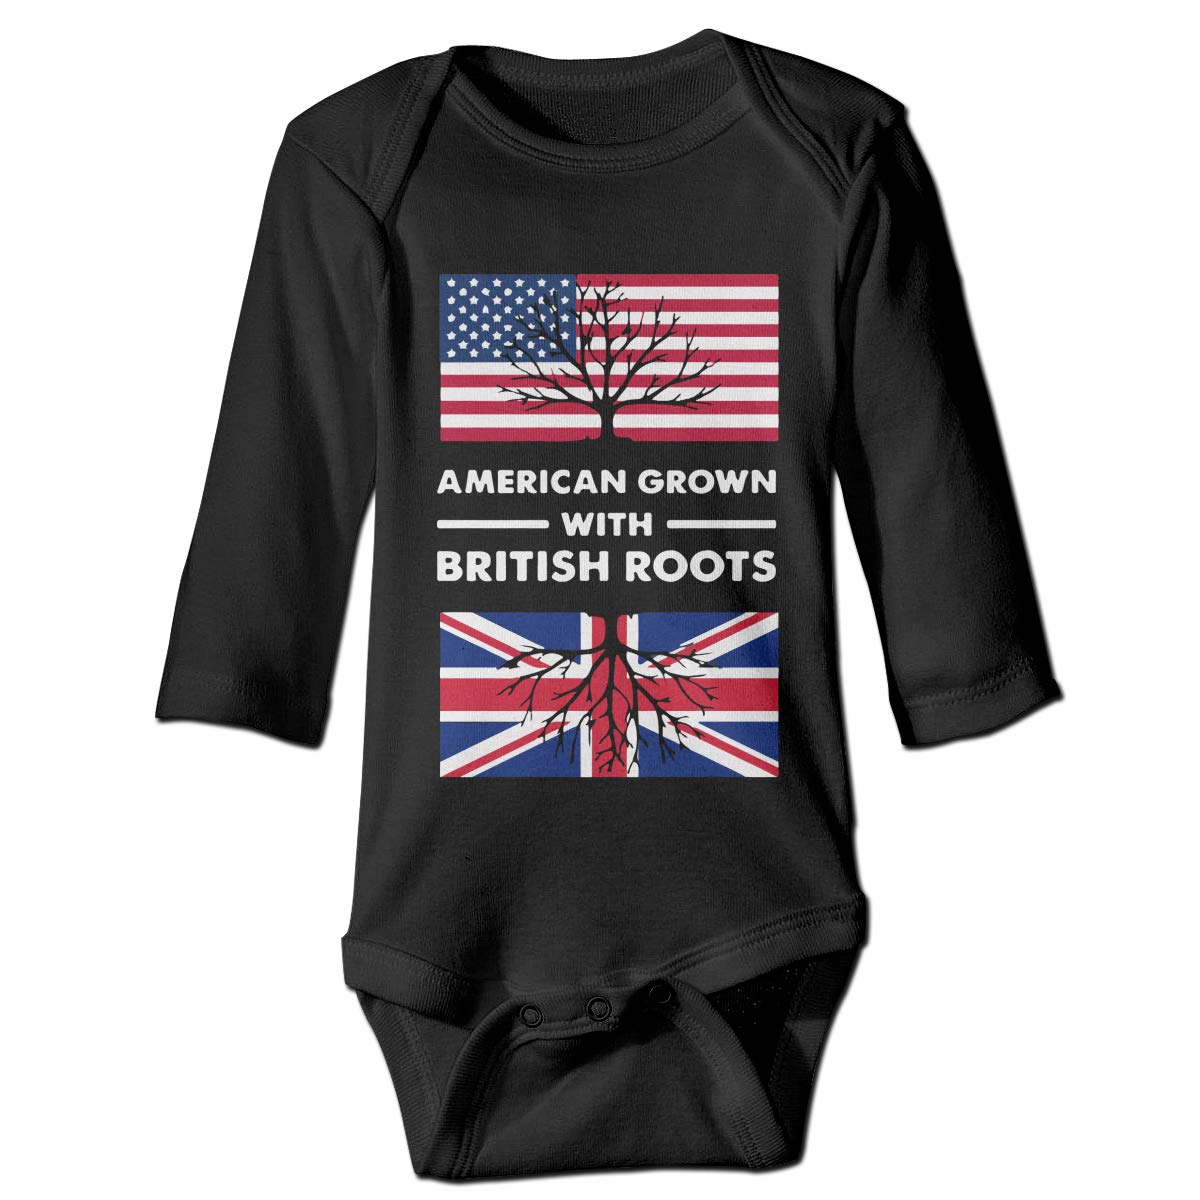 CZDedgQ99 Baby Boys American with British Roots Long Sleeve Climbing Clothes Bodysuits Suit 6-24 Months